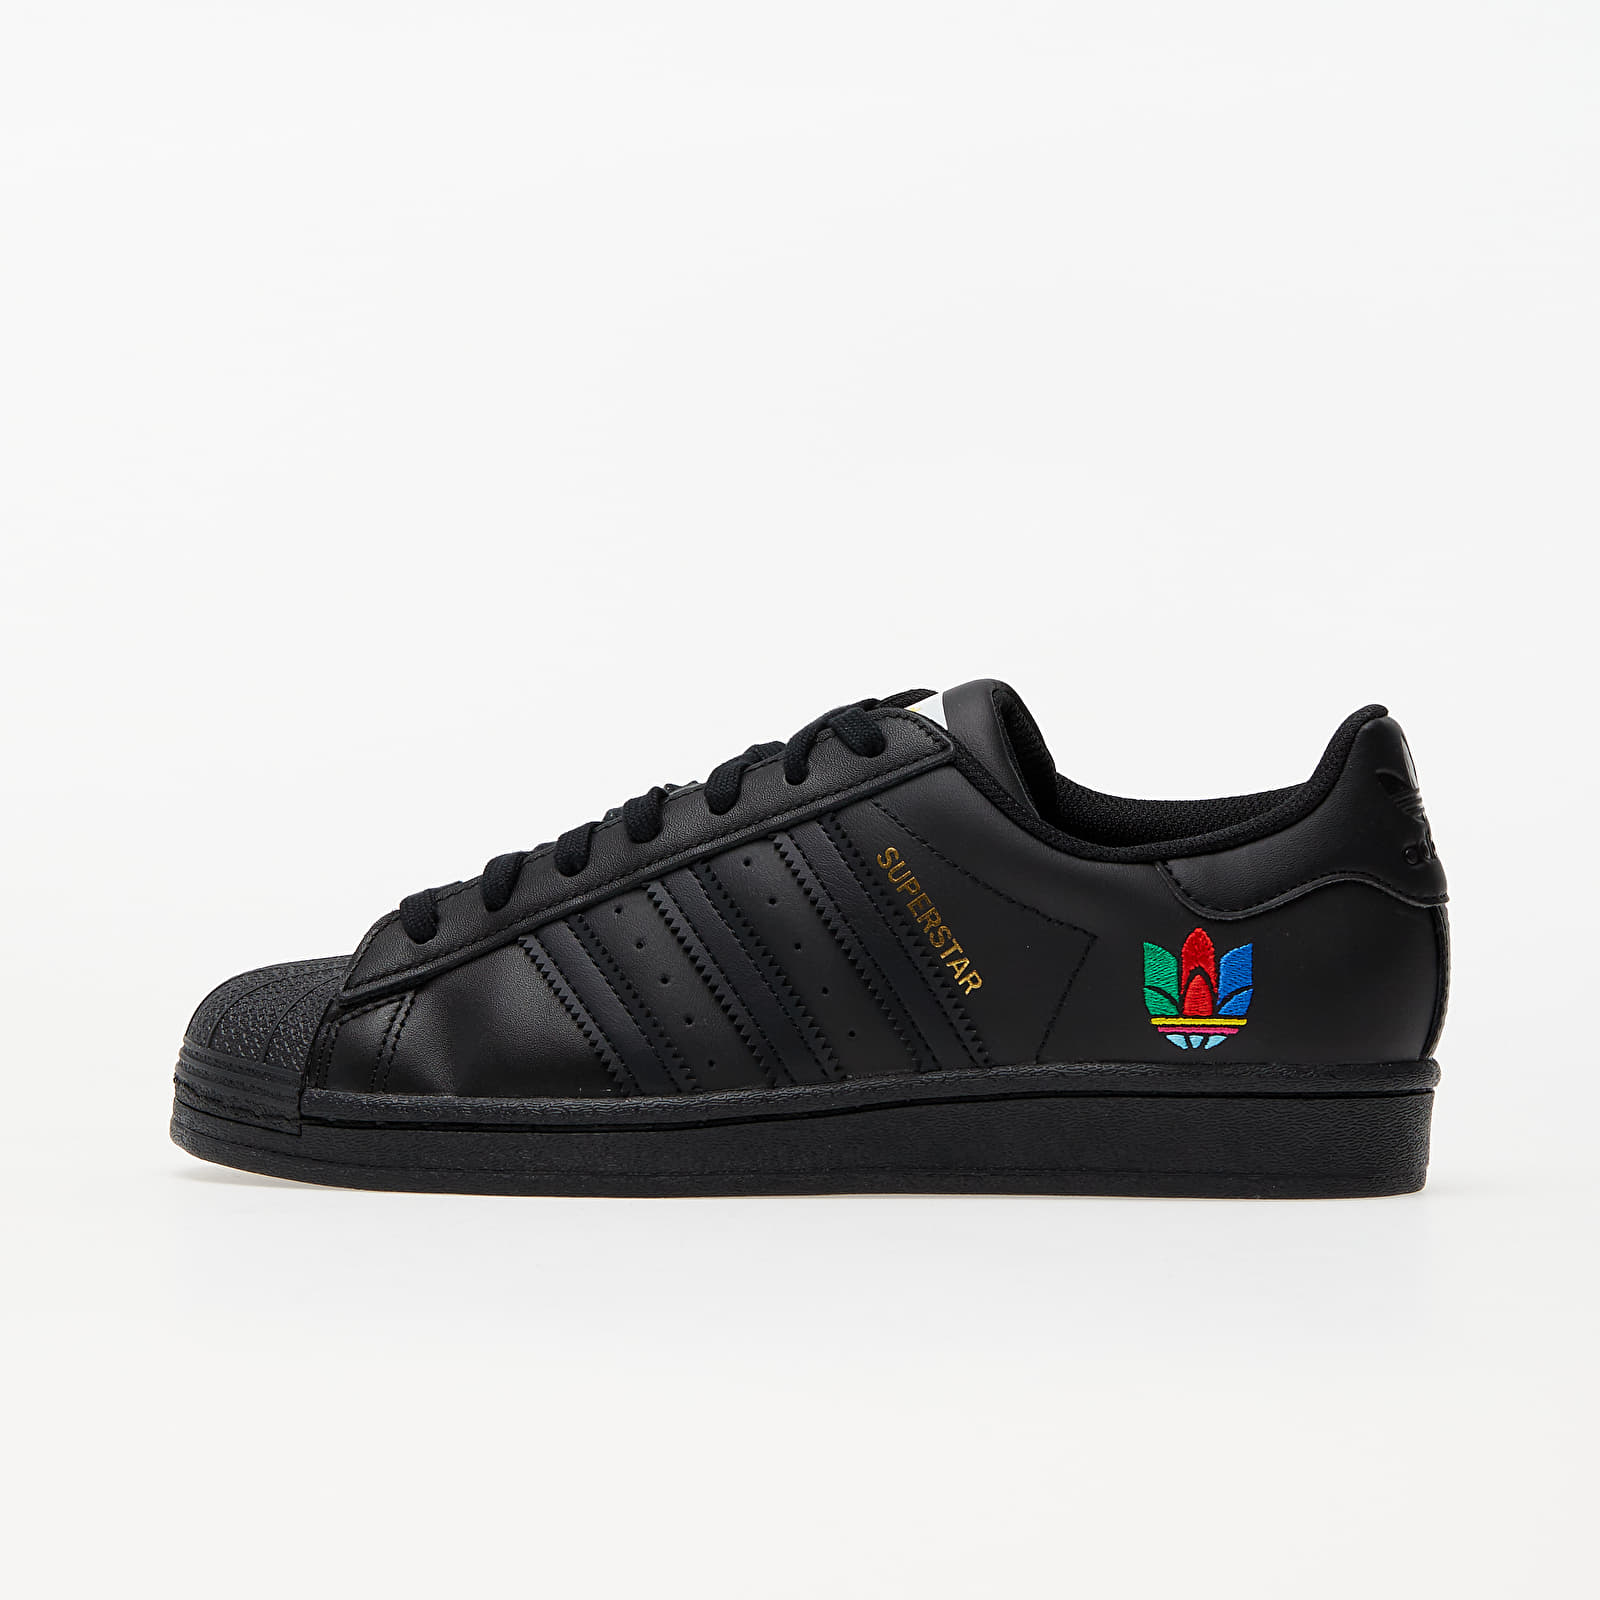 adidas Superstar W Core Black/ Core Black/ Real Magenta EUR 38